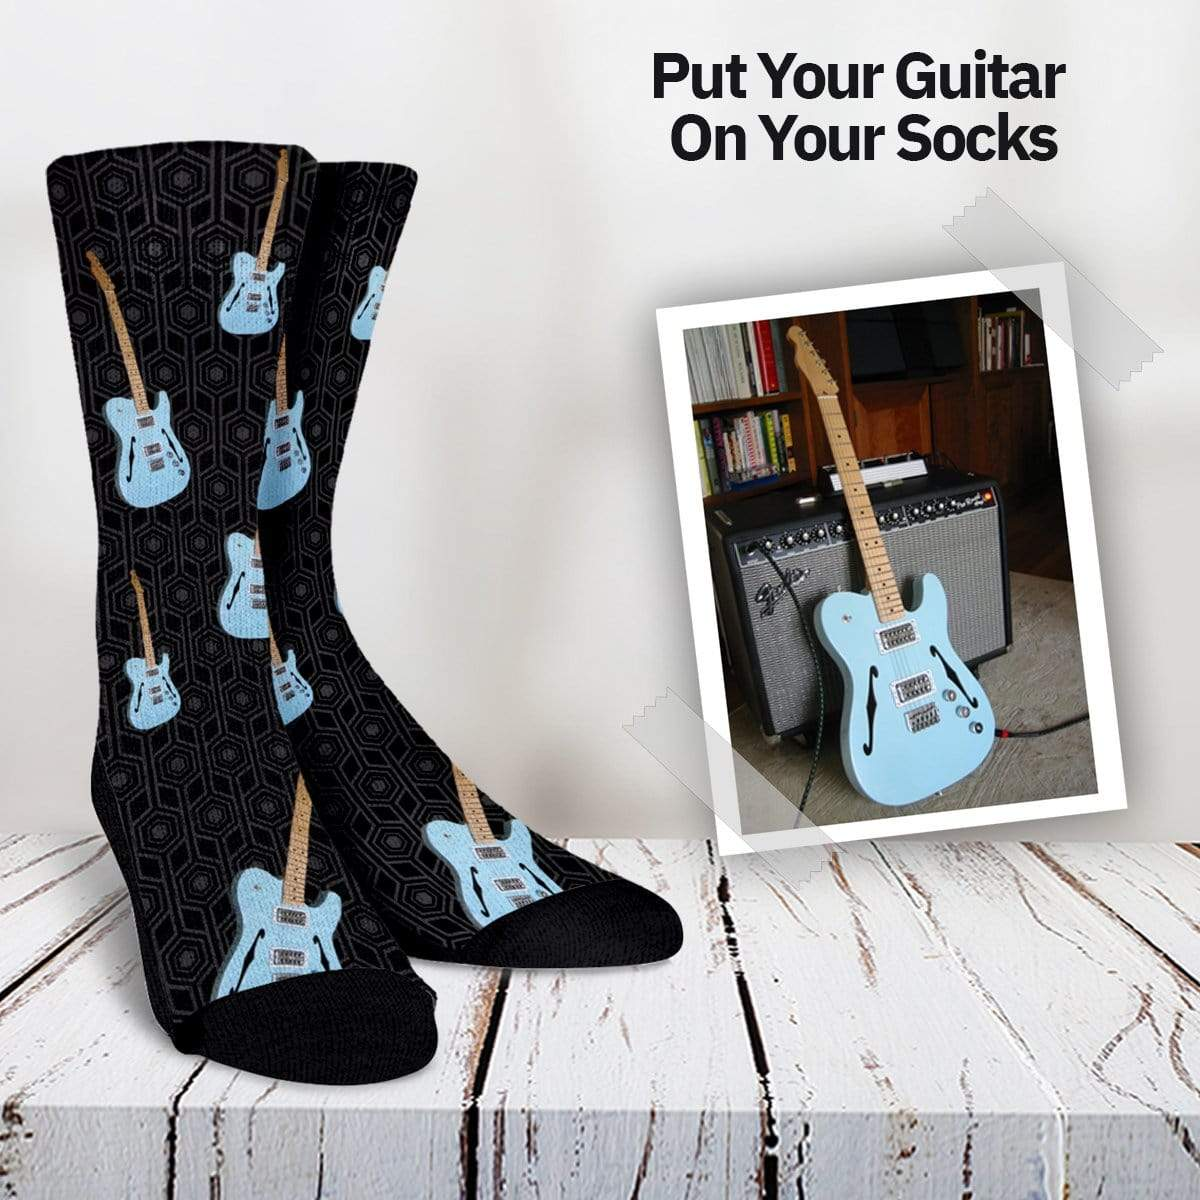 Your Guitar On Your Socks - Amp Pattern Custom Socks - Offer Wall